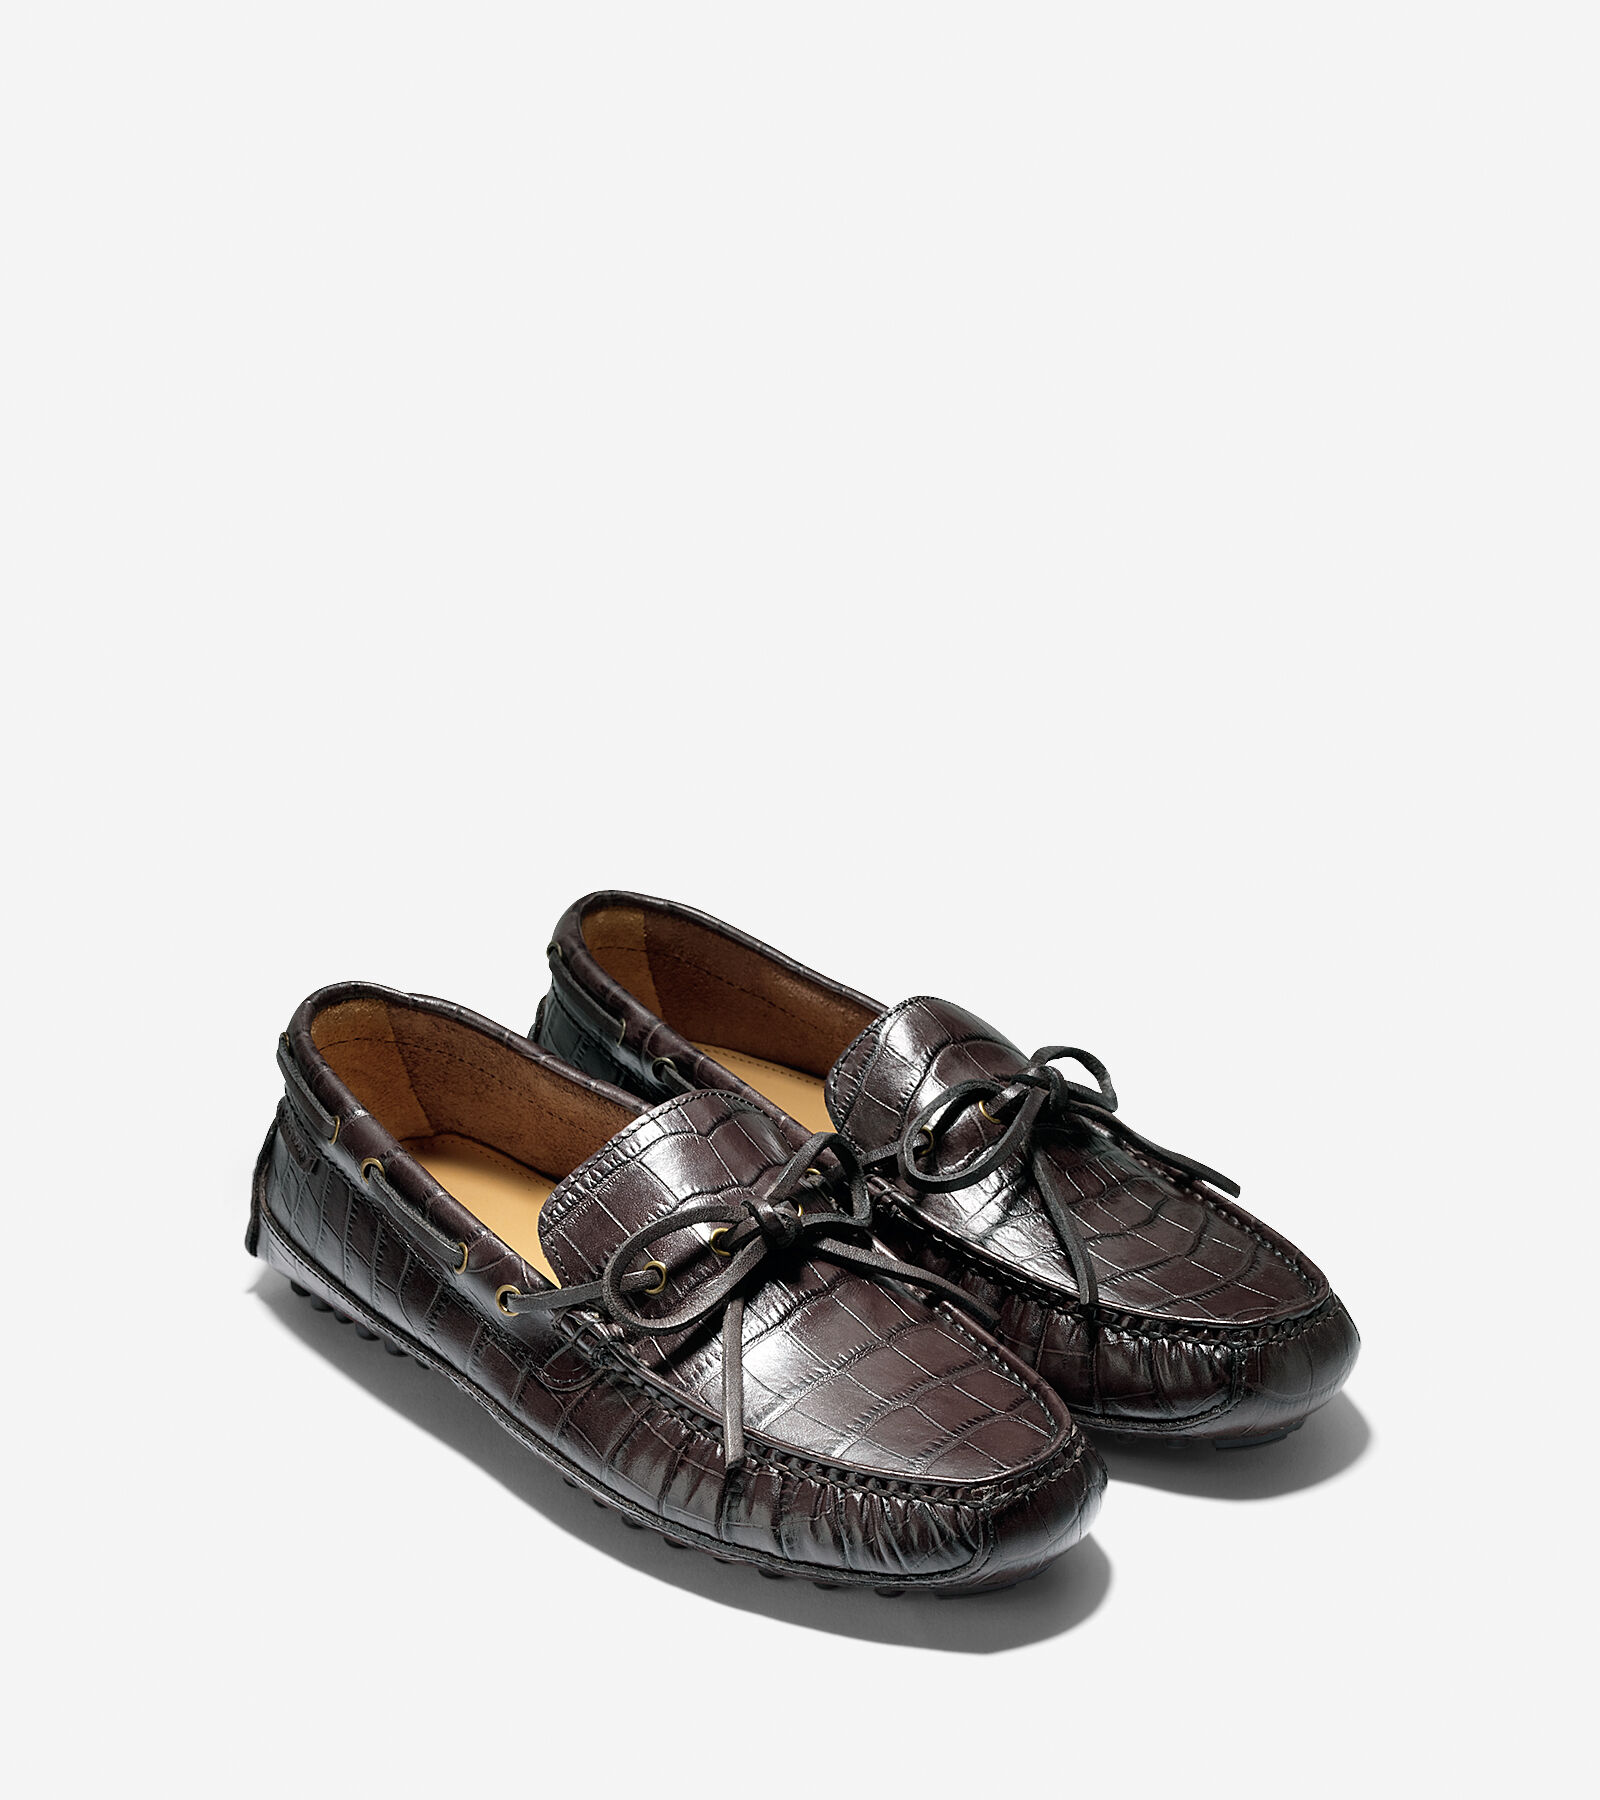 Cole Haan Men's 'Grant Canoe Camp' Driving Moccasin 0196mIcw